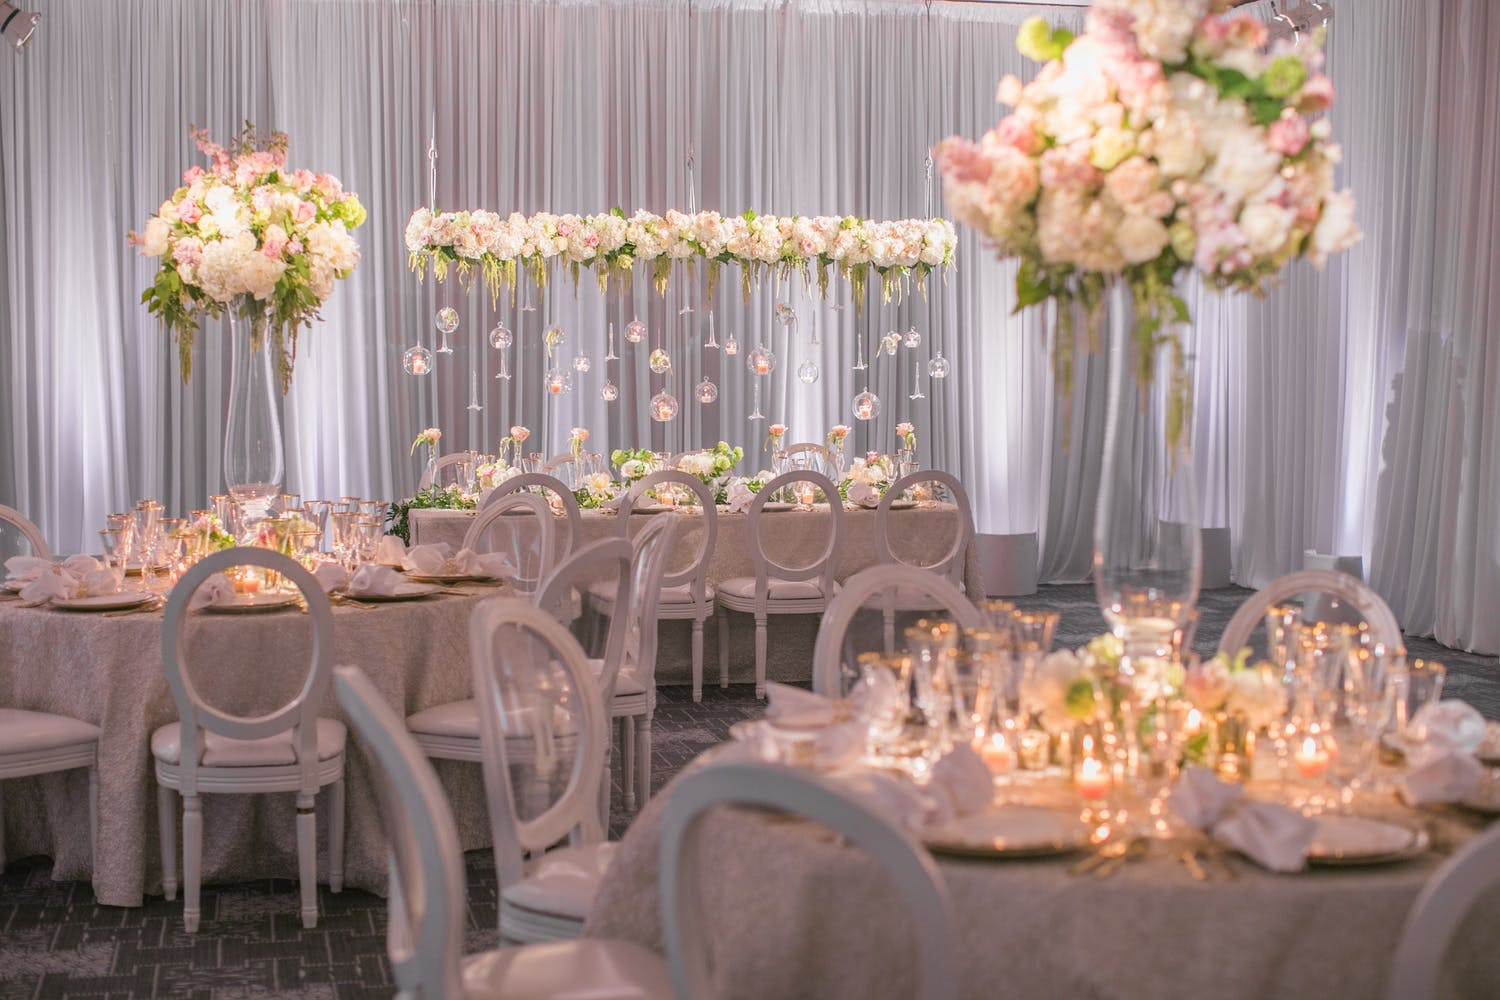 reception area with pink bloom centerpieces and suspended installations